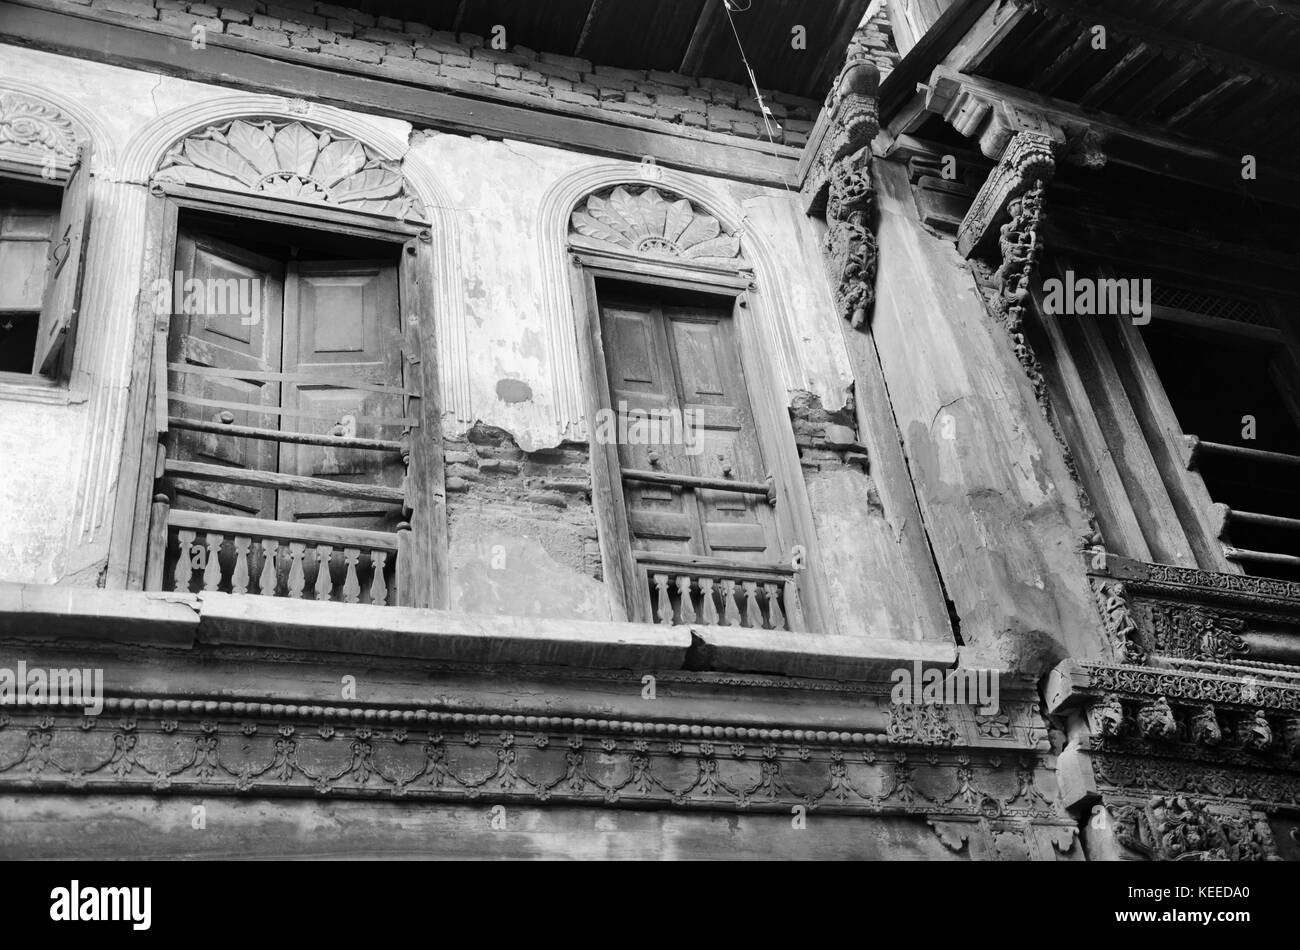 AHMEDABAD, INDIA - NOVEMBER 27, 2016: A traditional house or 'Haveli' decorated with wooden carving in the - Stock Image